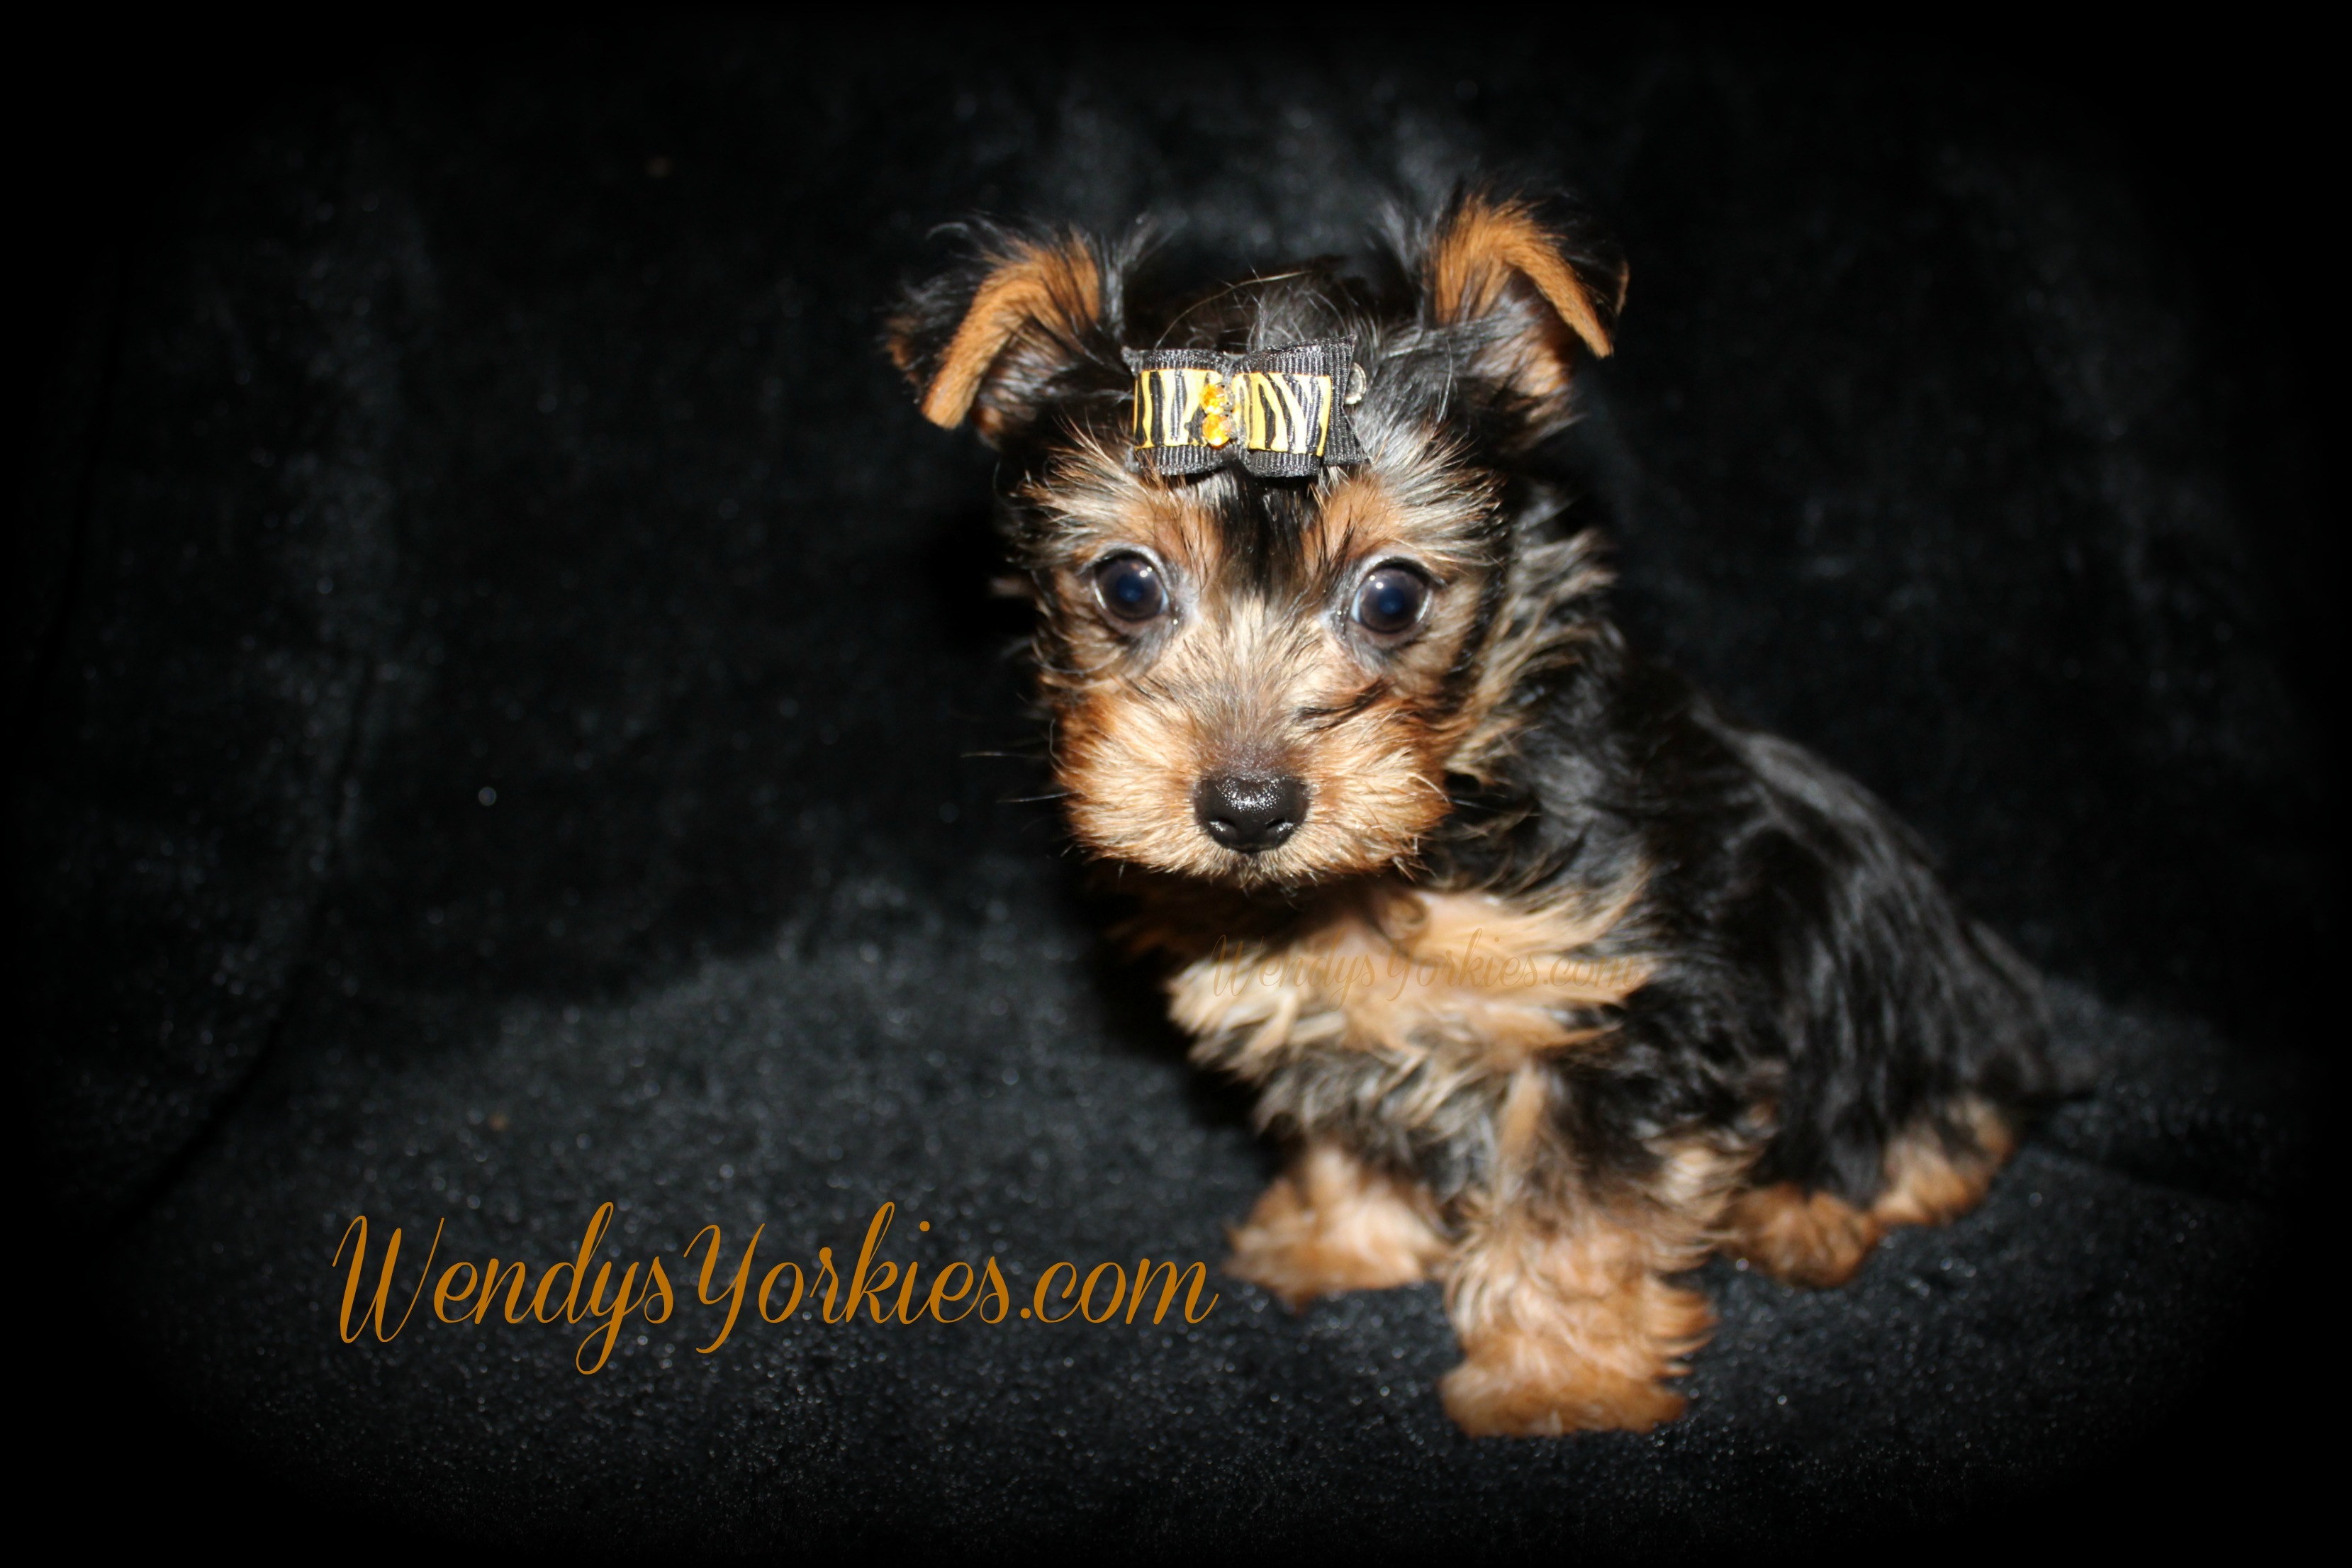 Teacup Yorkie puppies for sale in Texas, Yorkie puppies for sale near me, anna m2, WendysYorkies.com